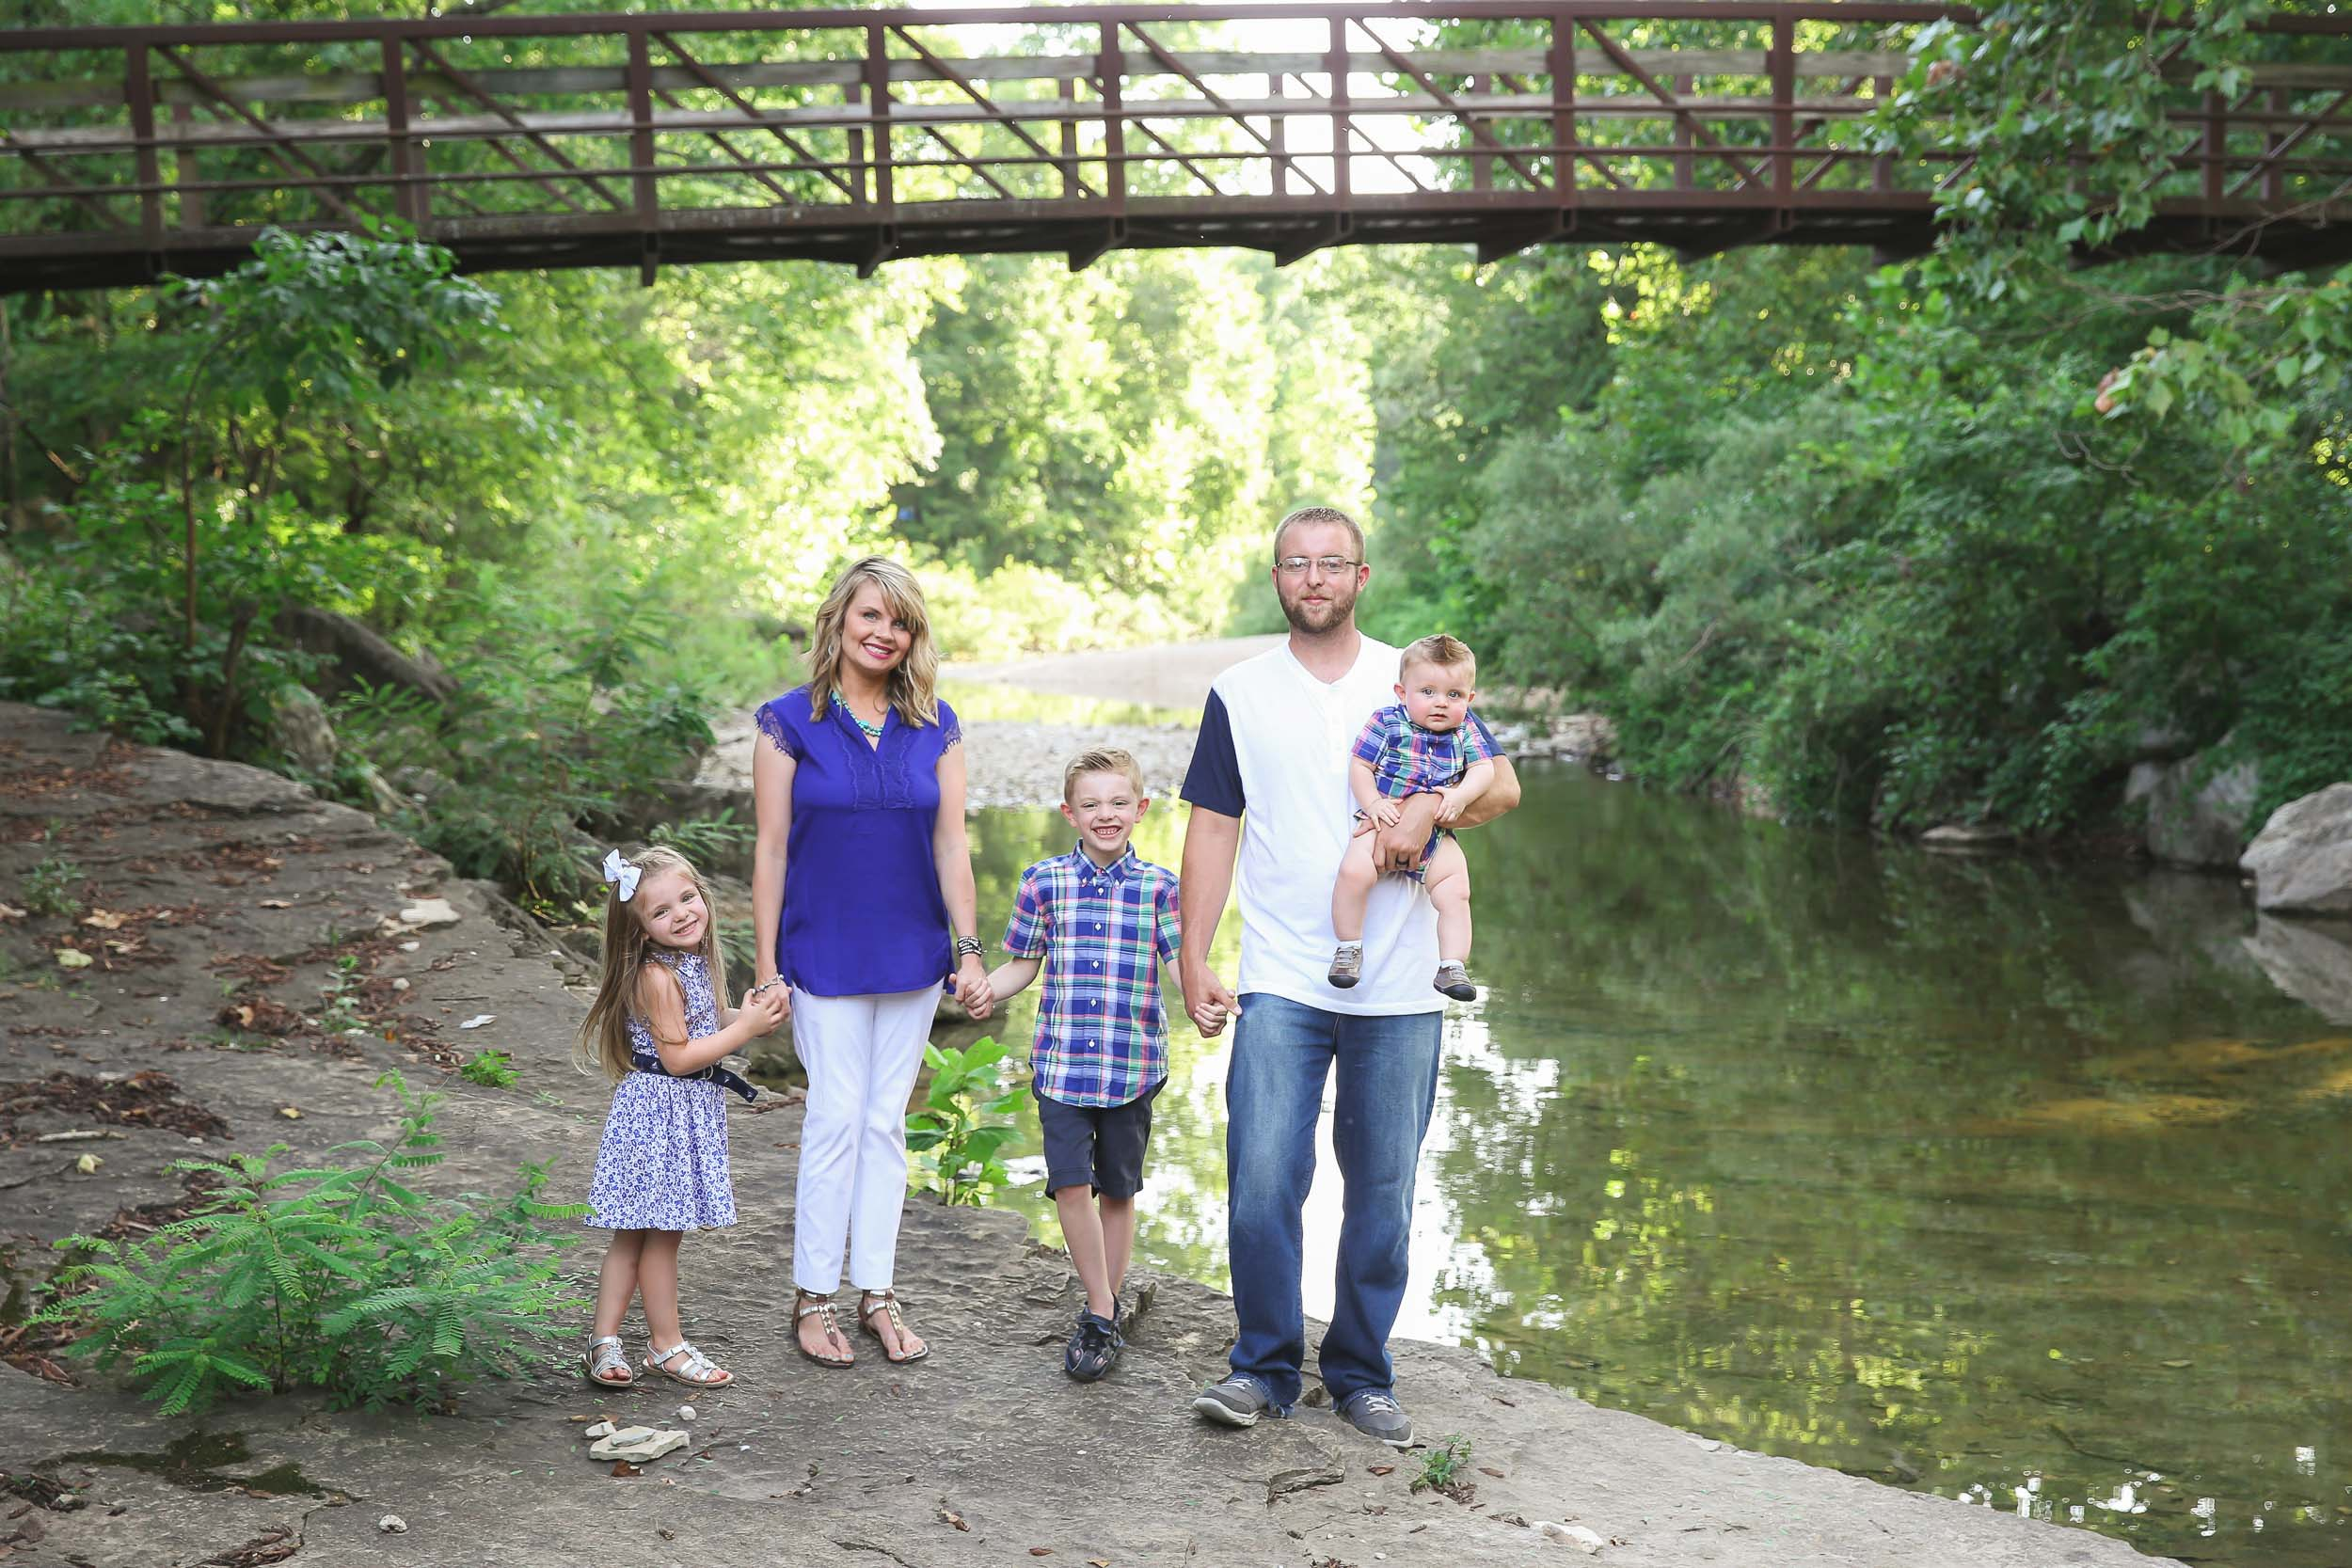 Macquarrie family branson mo family photographer for 417 salon branson west